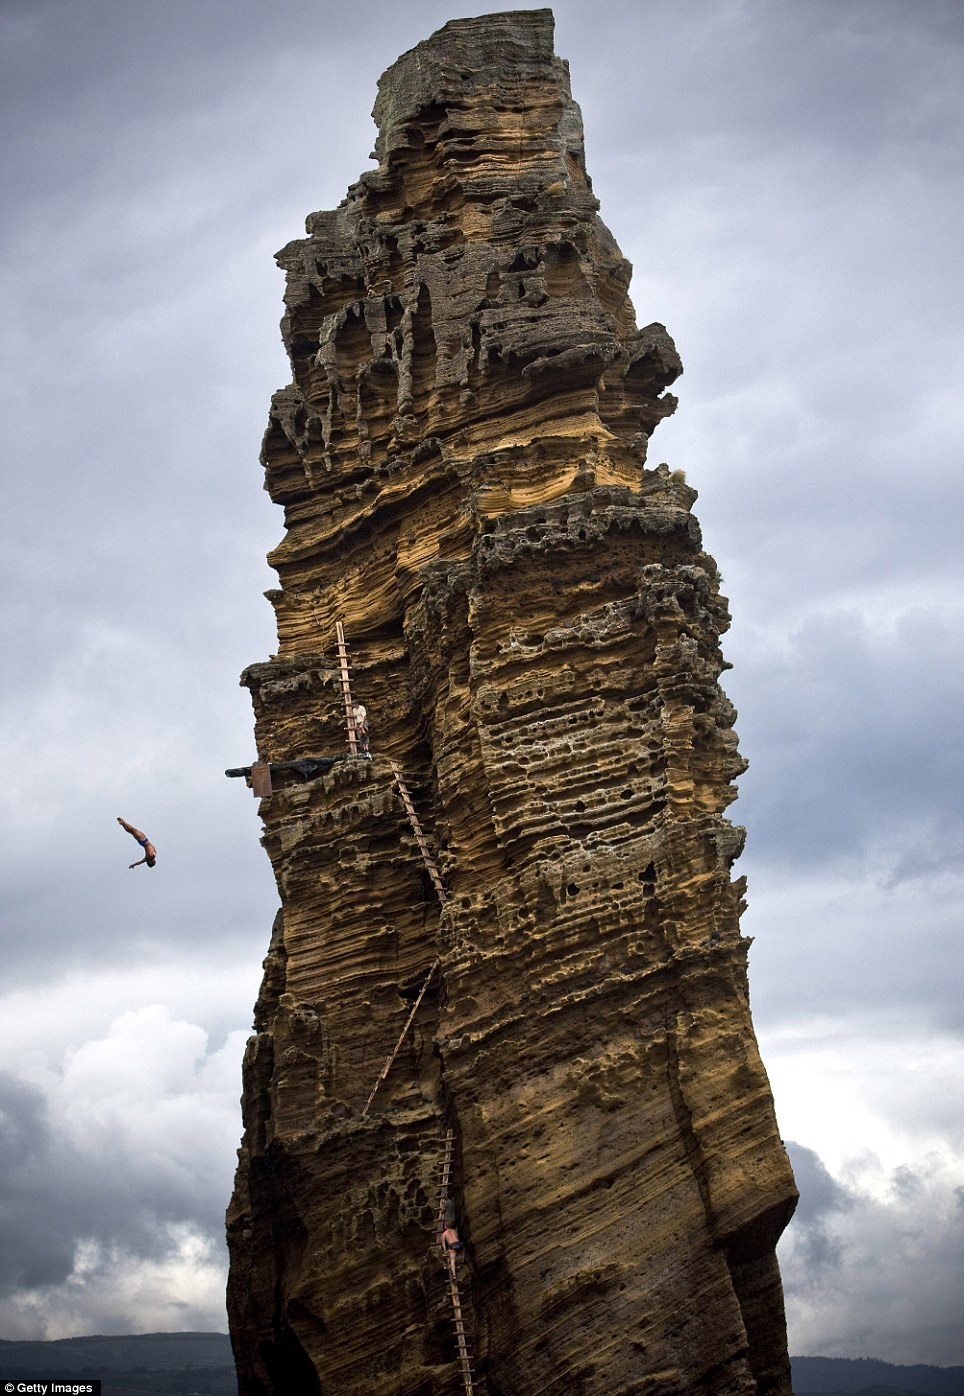 The third stop of the Red Bull Cliff Diving World Series is taking place on the Islet of Vila Franca do Campo in the sunny Azores